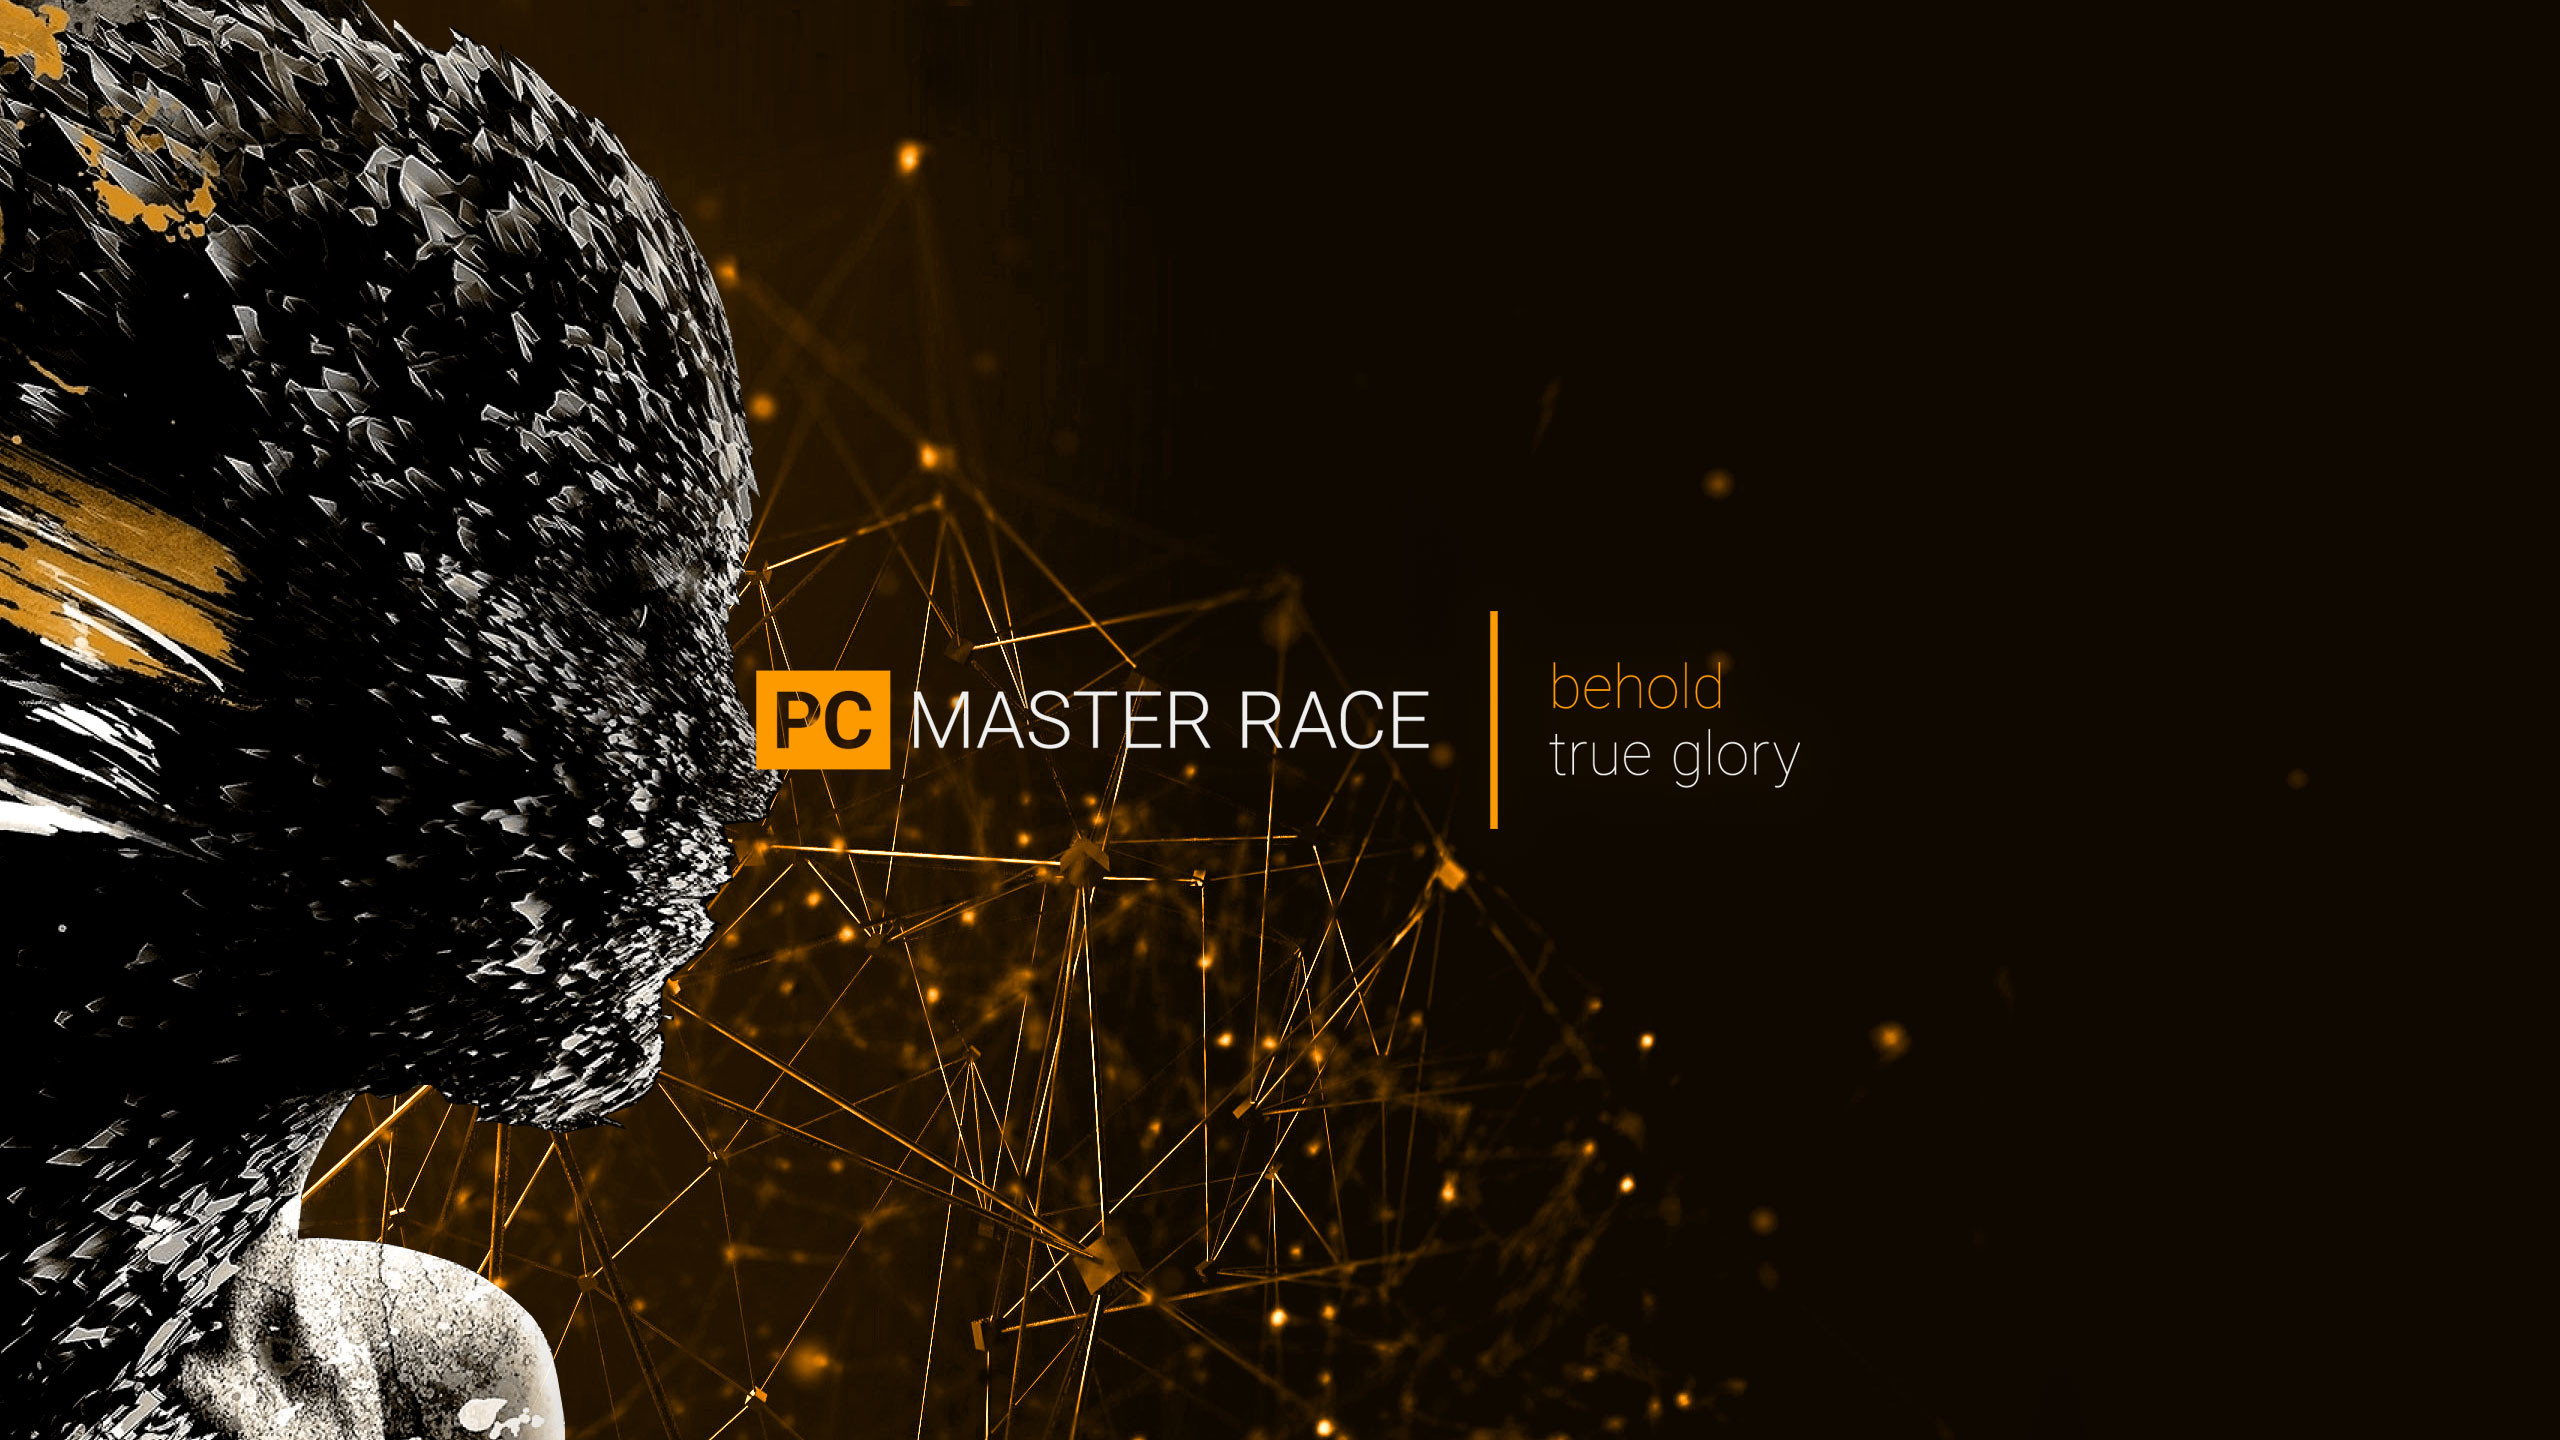 Pc Master Race Full Hd Wallpaper And Background Image: Evga HD Wallpaper (80+ Images